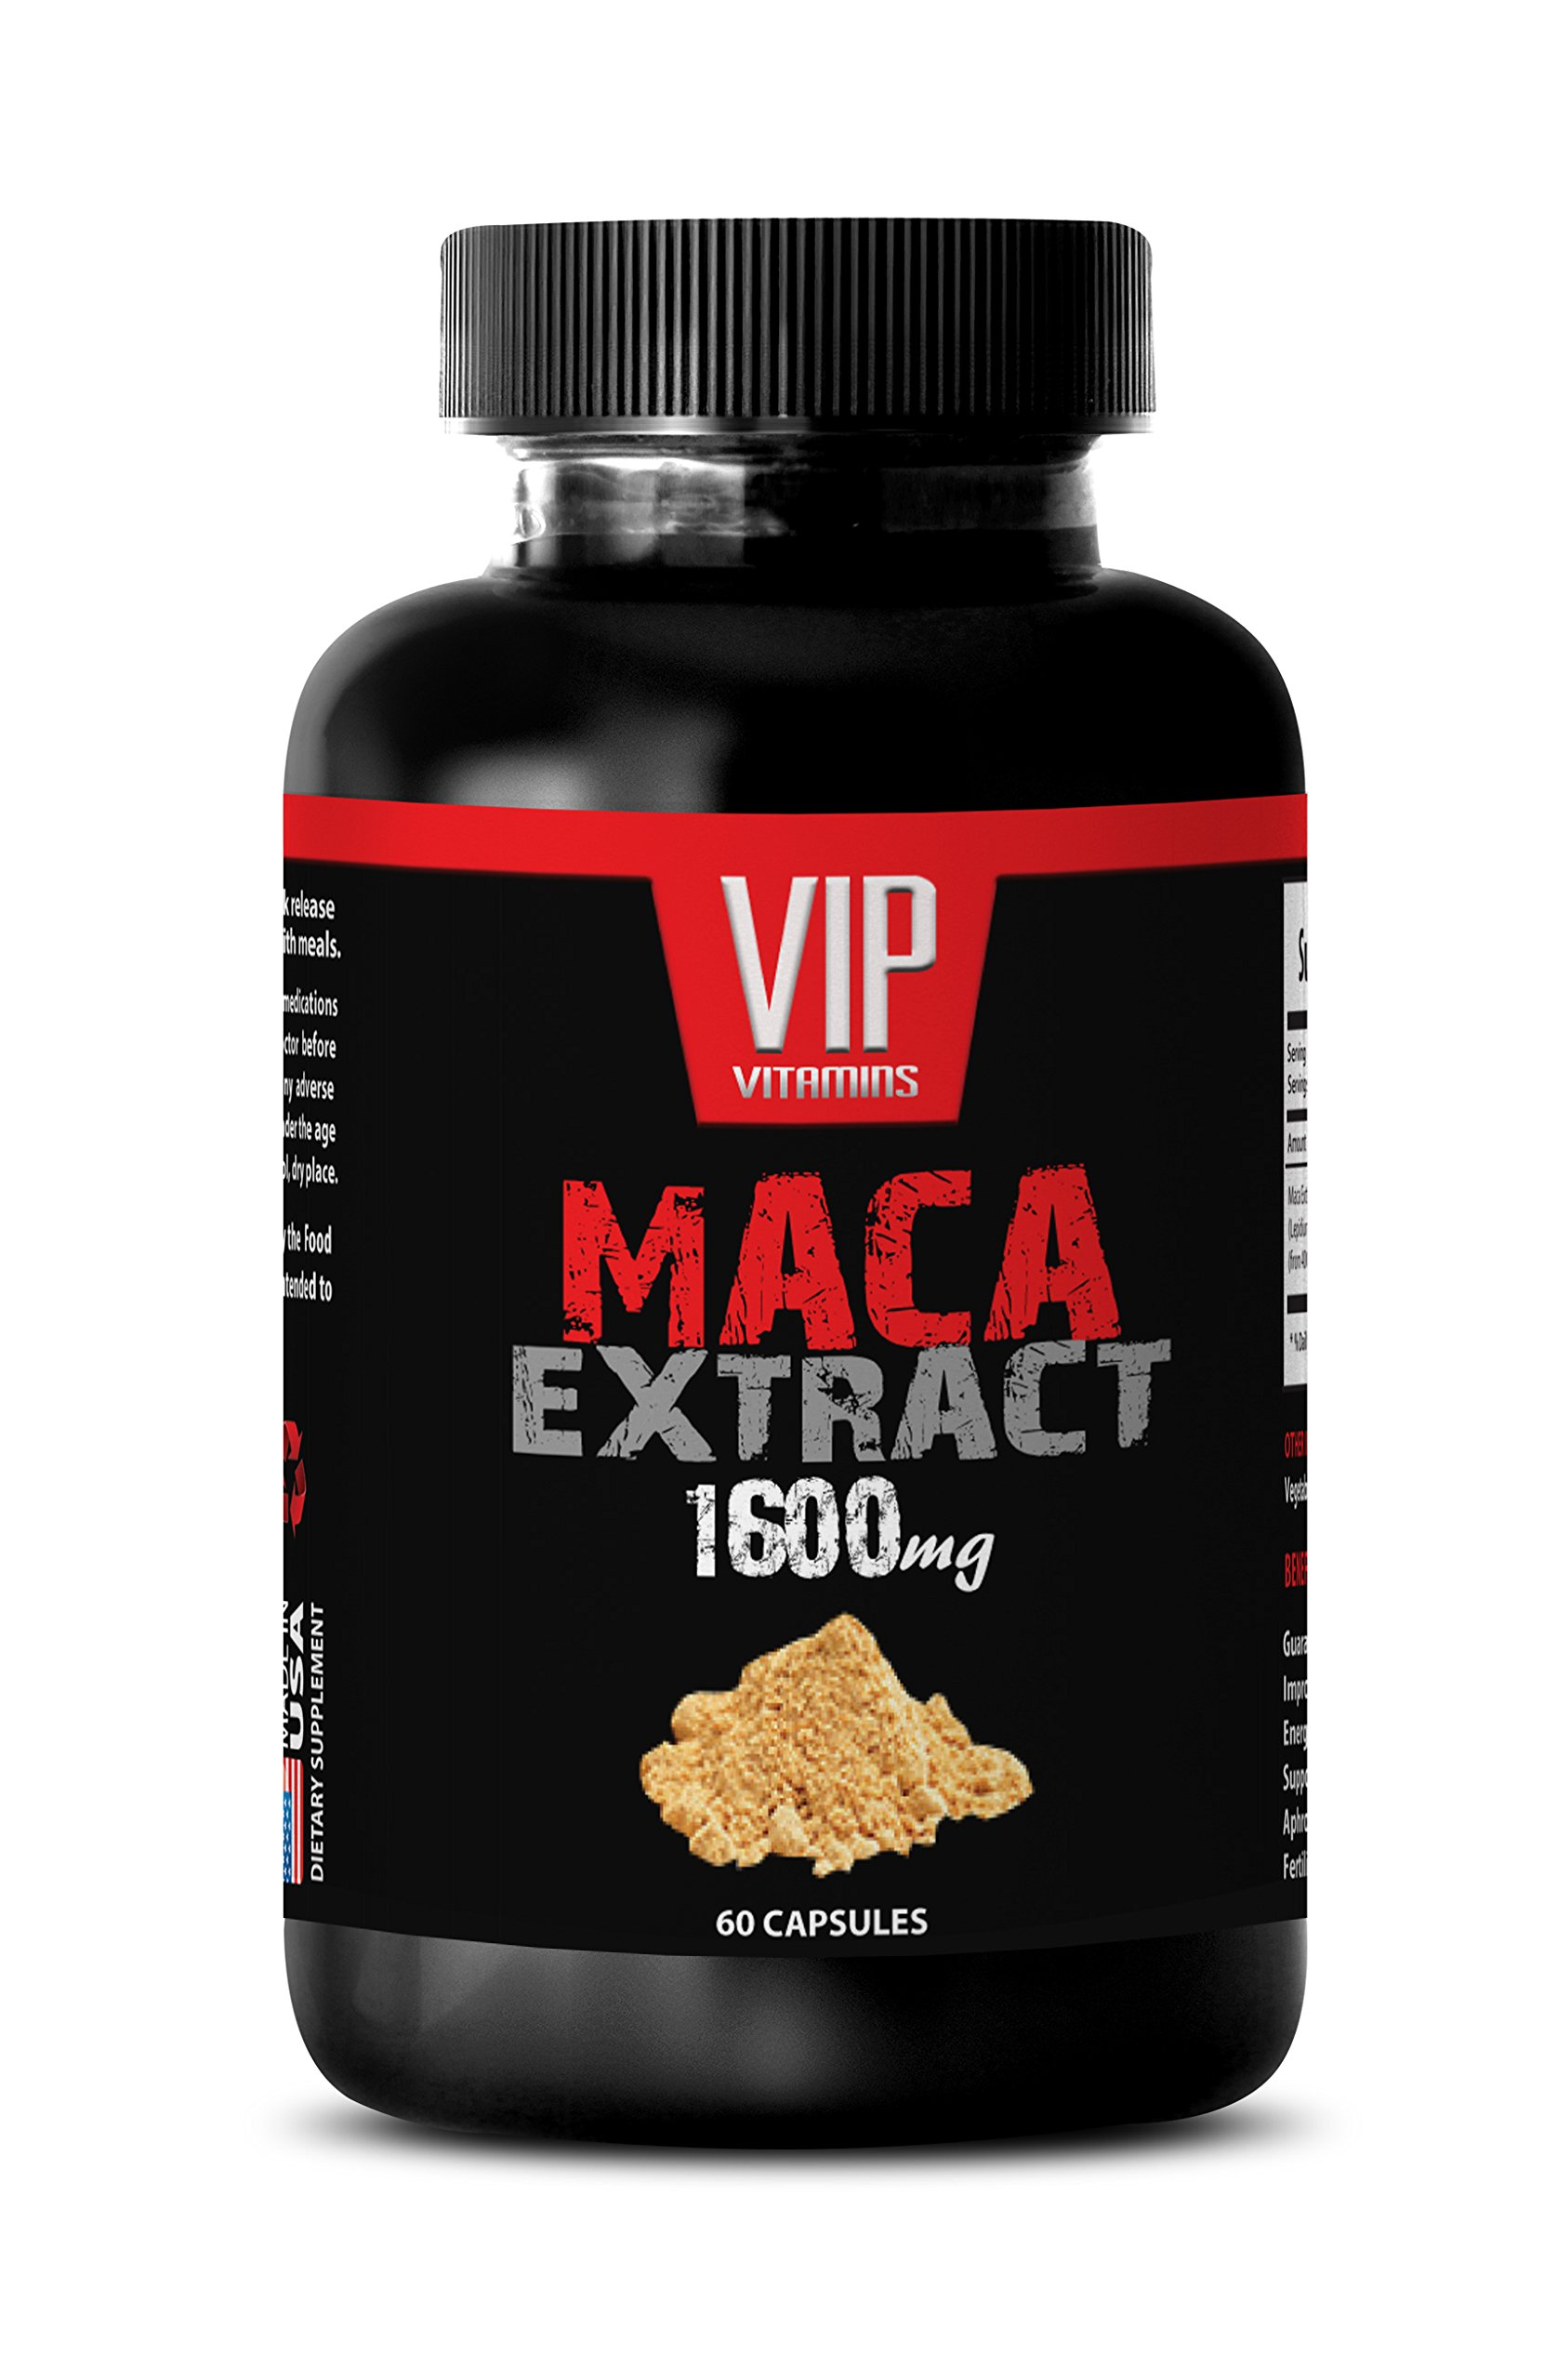 Maca Powder - Maca 1600mg 4: 1 Extract - Increases Fertility (1 Bottle 60 Capsules)